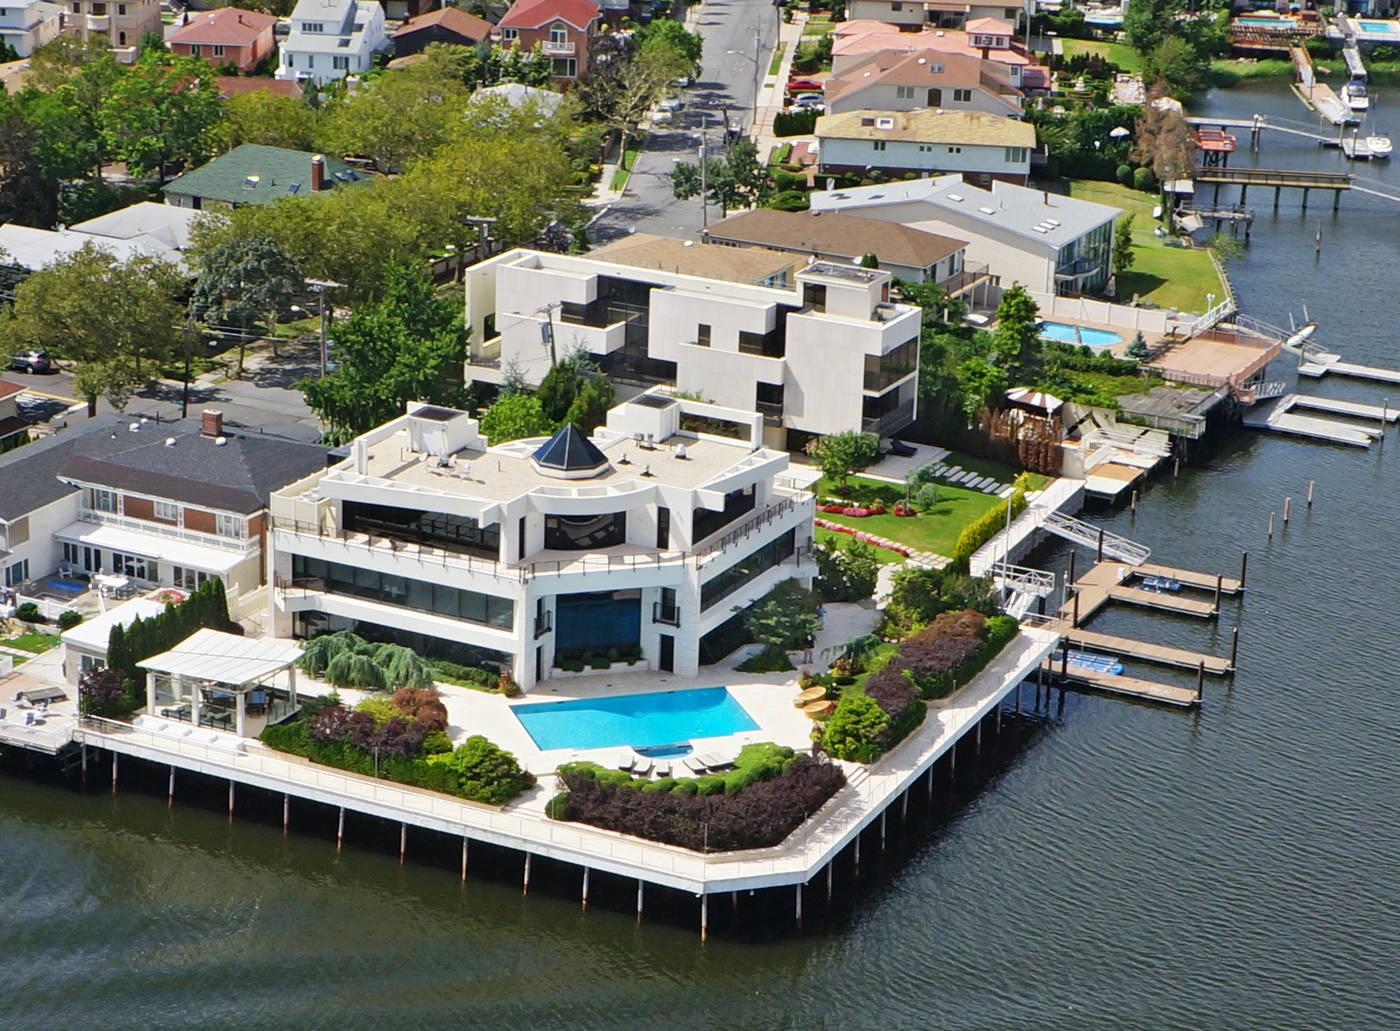 Bonkers Mill Basin mansion